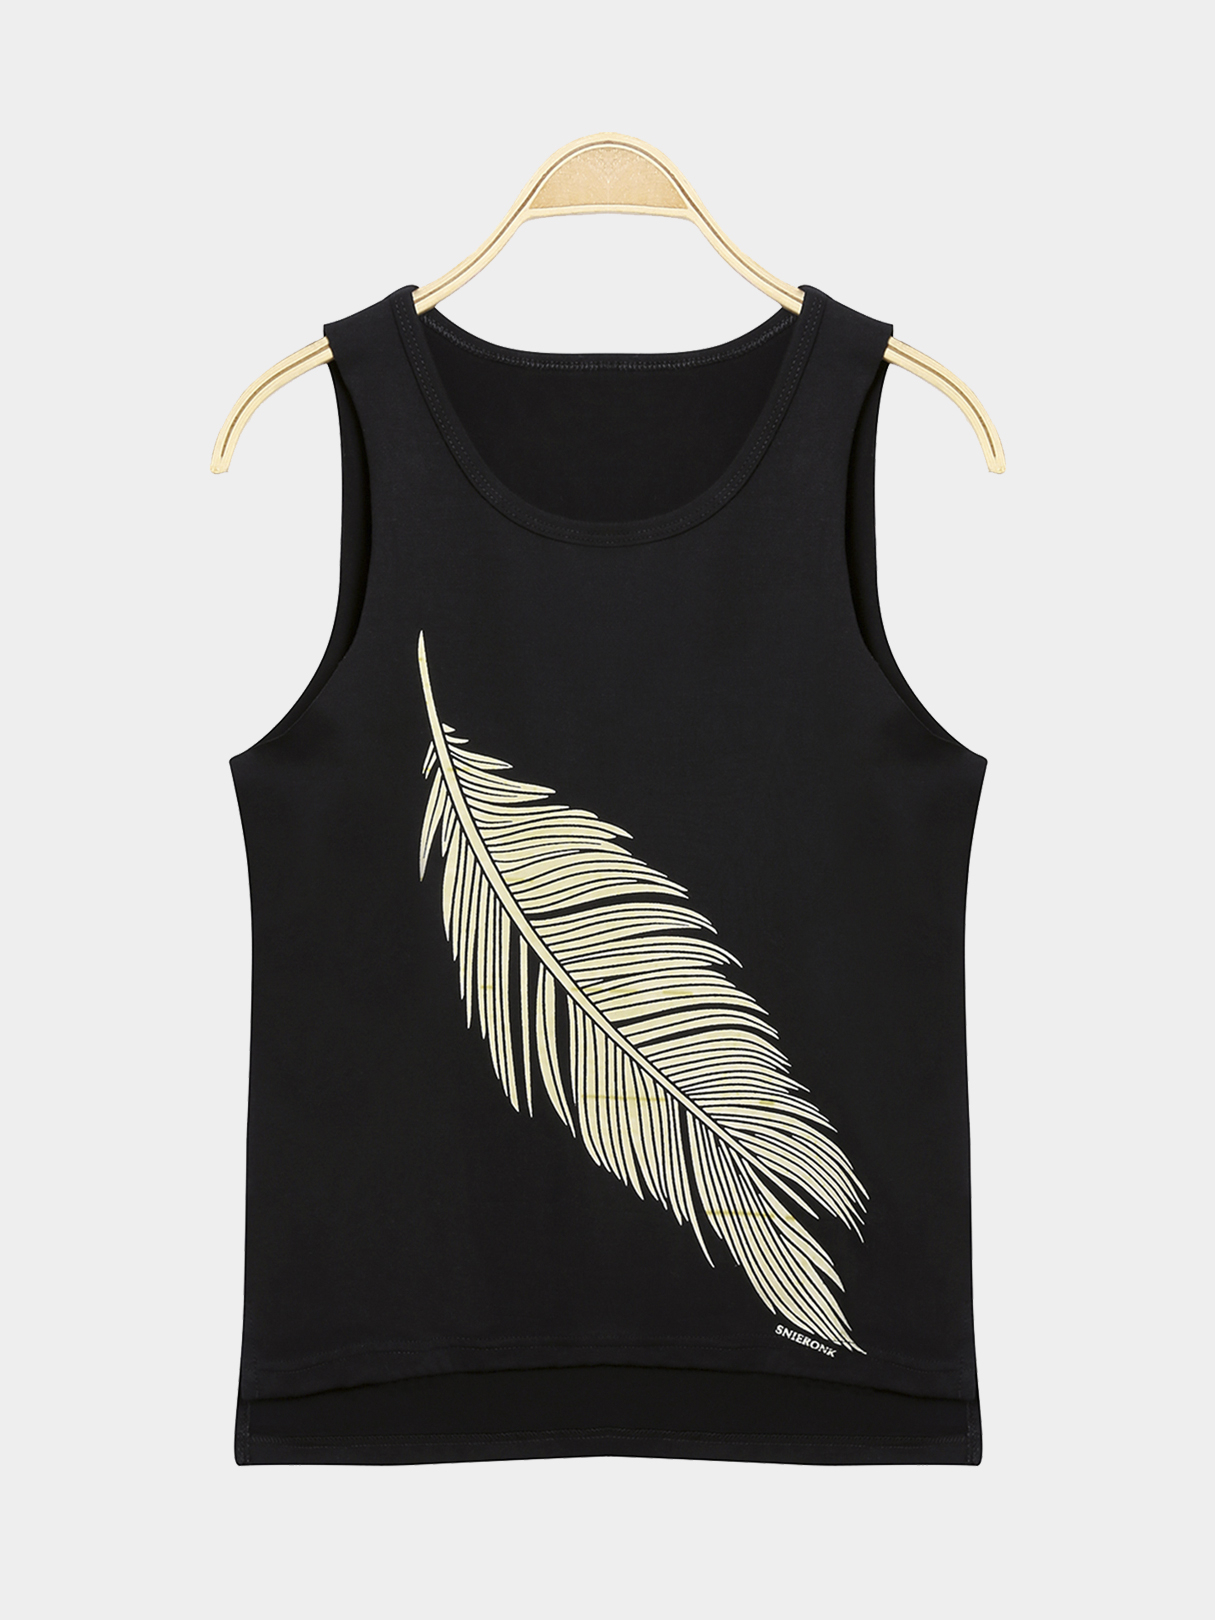 Basic Style Round Neck Vest with Feather Pattern